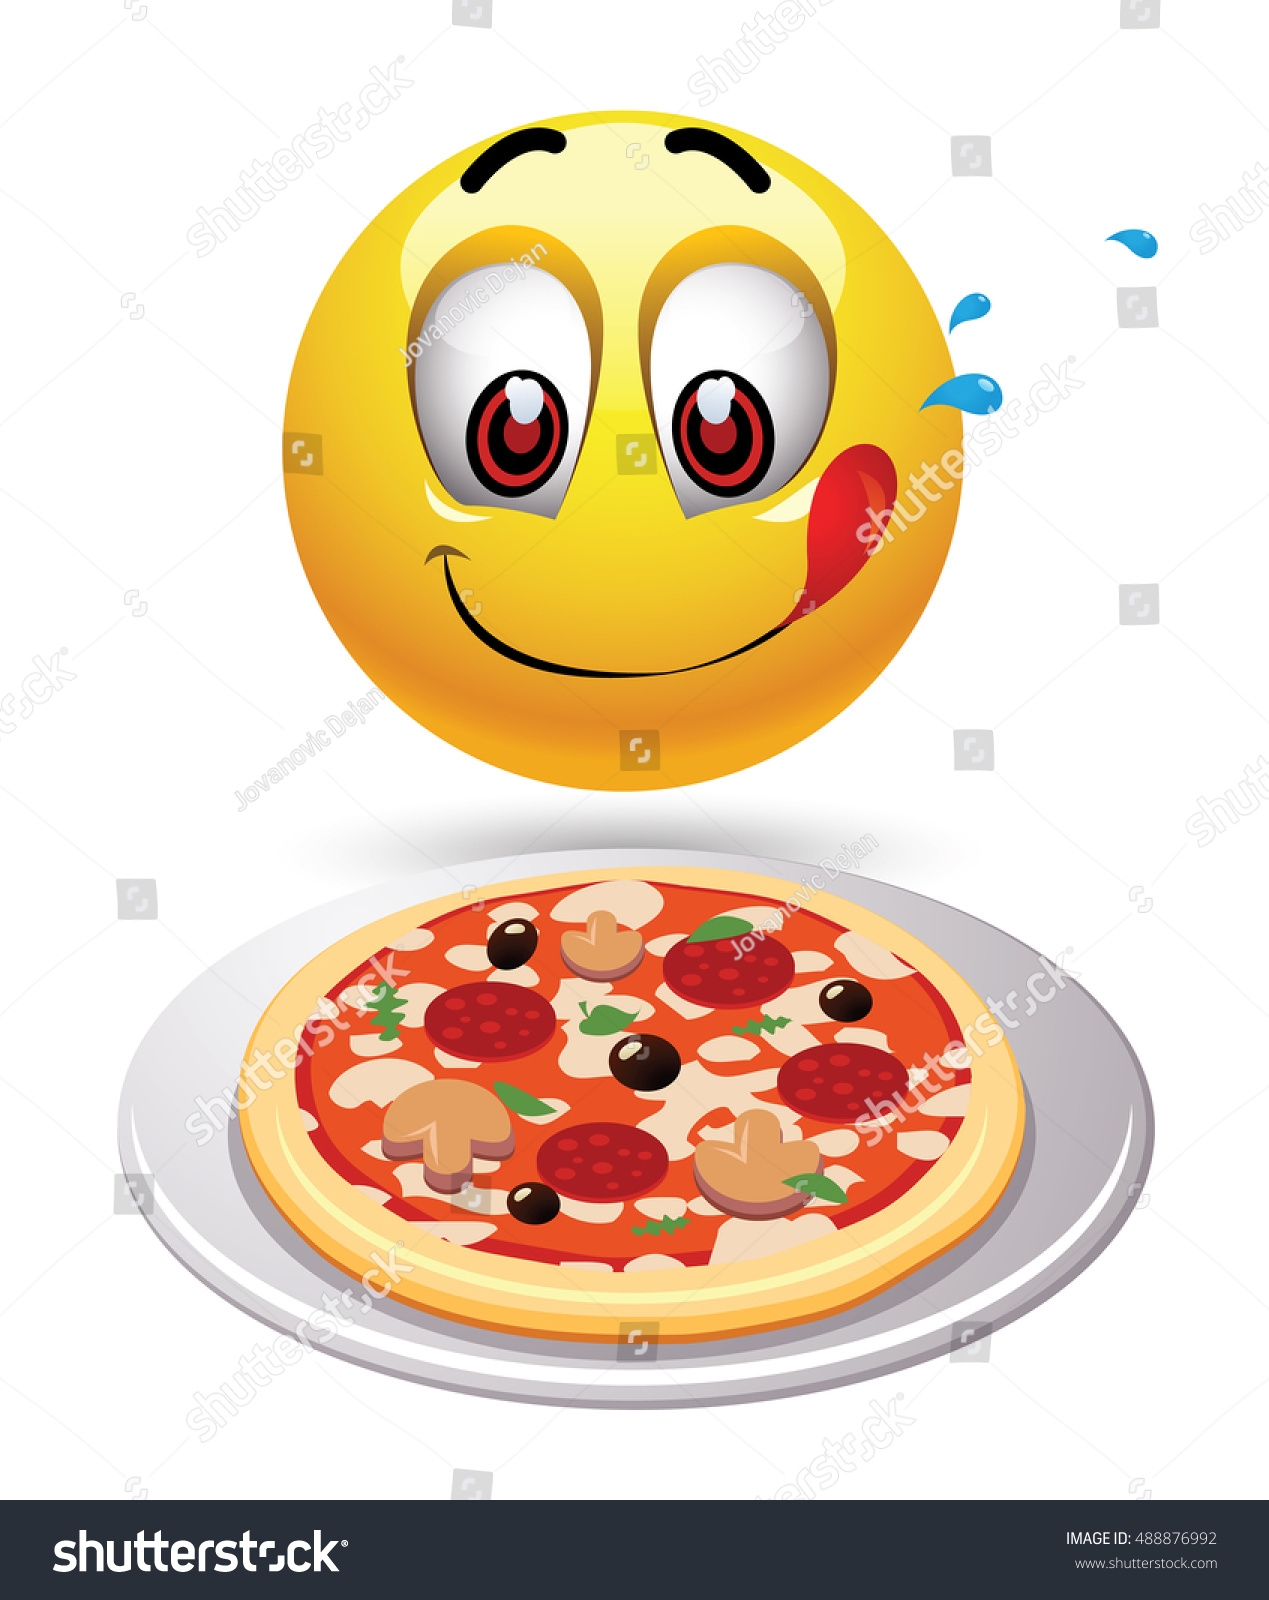 hungry smiley looking tasty pizza humoristic 488876992 shutterstock. Black Bedroom Furniture Sets. Home Design Ideas